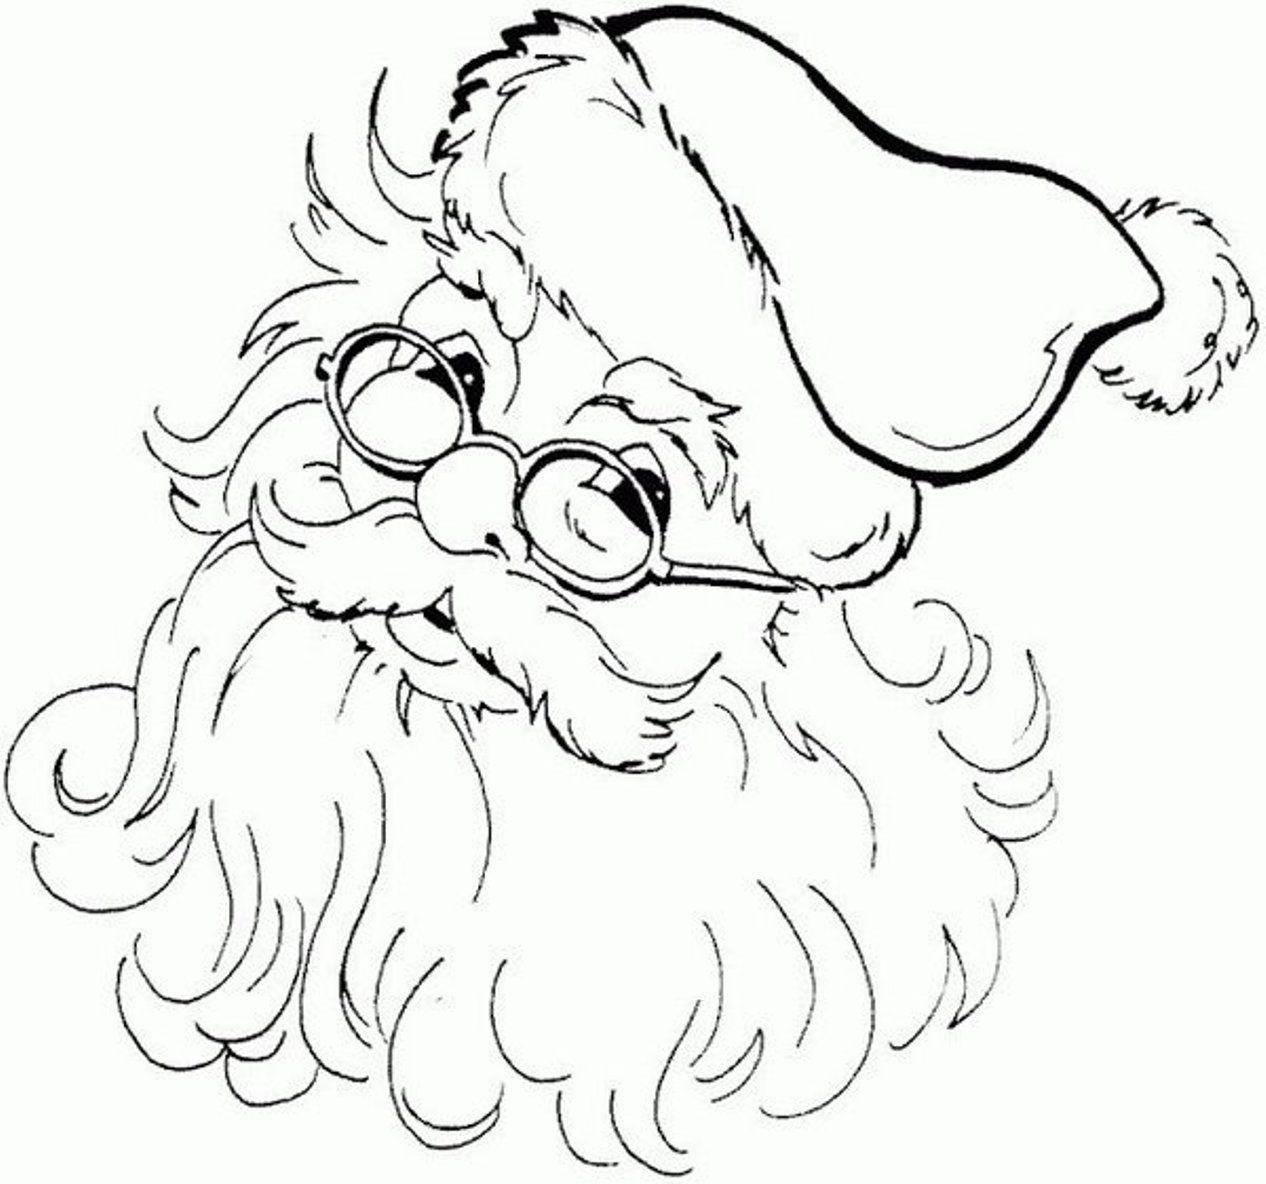 Images For Santa Claus Face Black And White Easy Christmas Drawings Christmas Coloring Pages Christmas Drawing